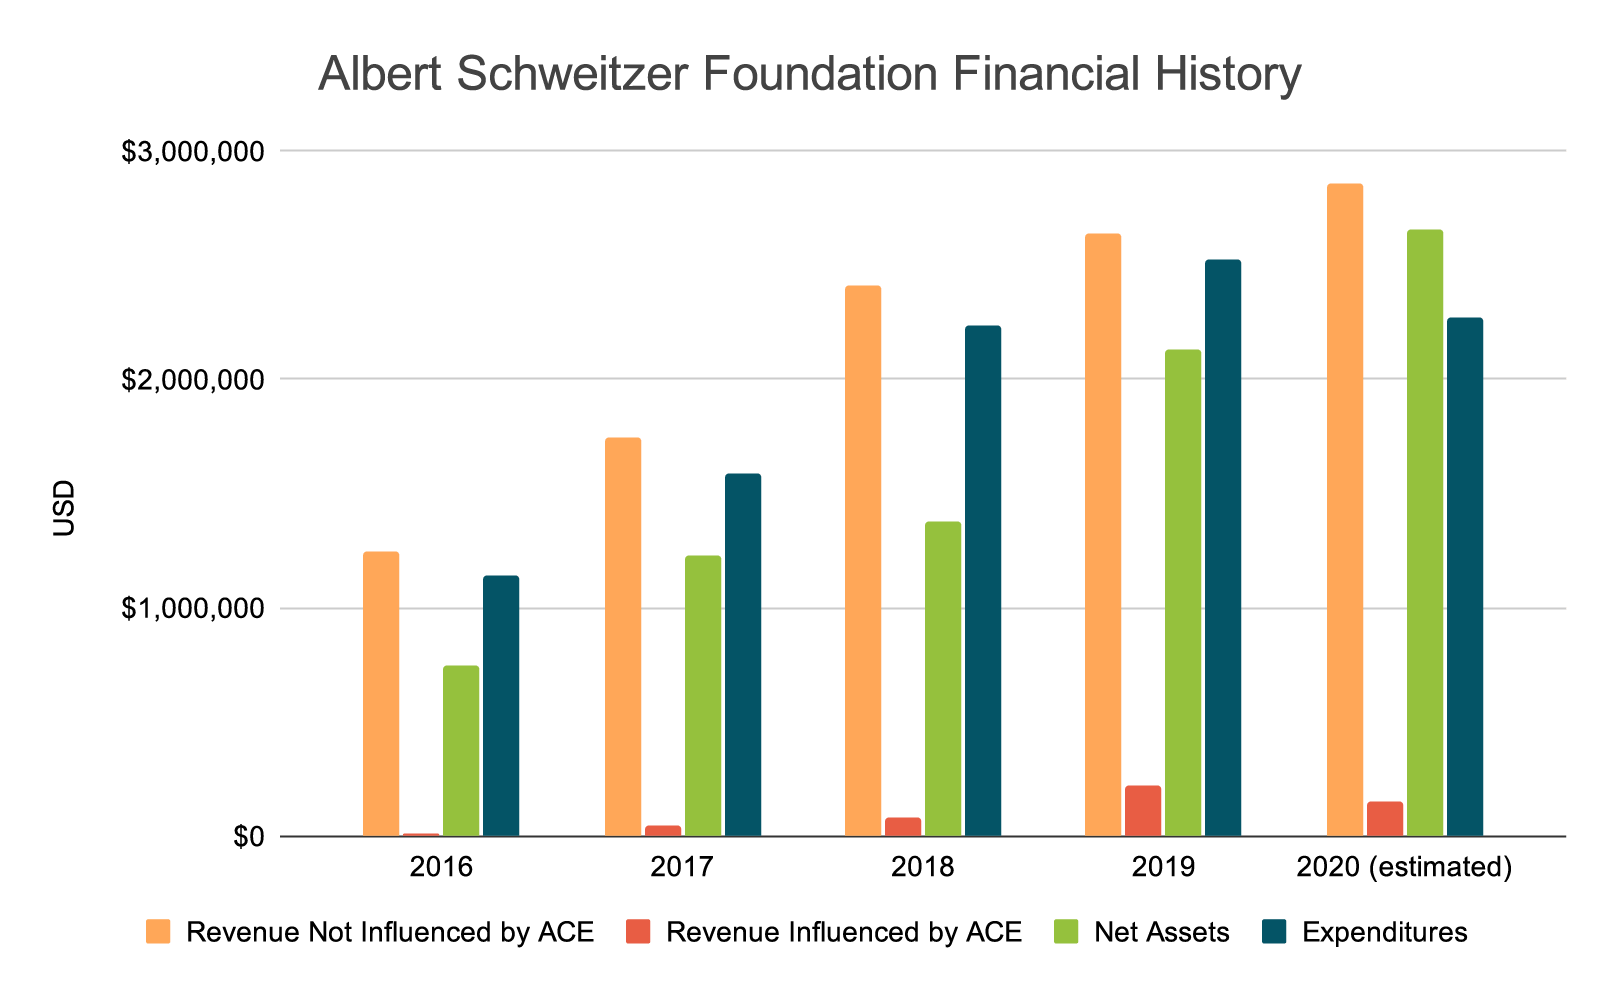 Albert Schweitzer Foundation Financial History